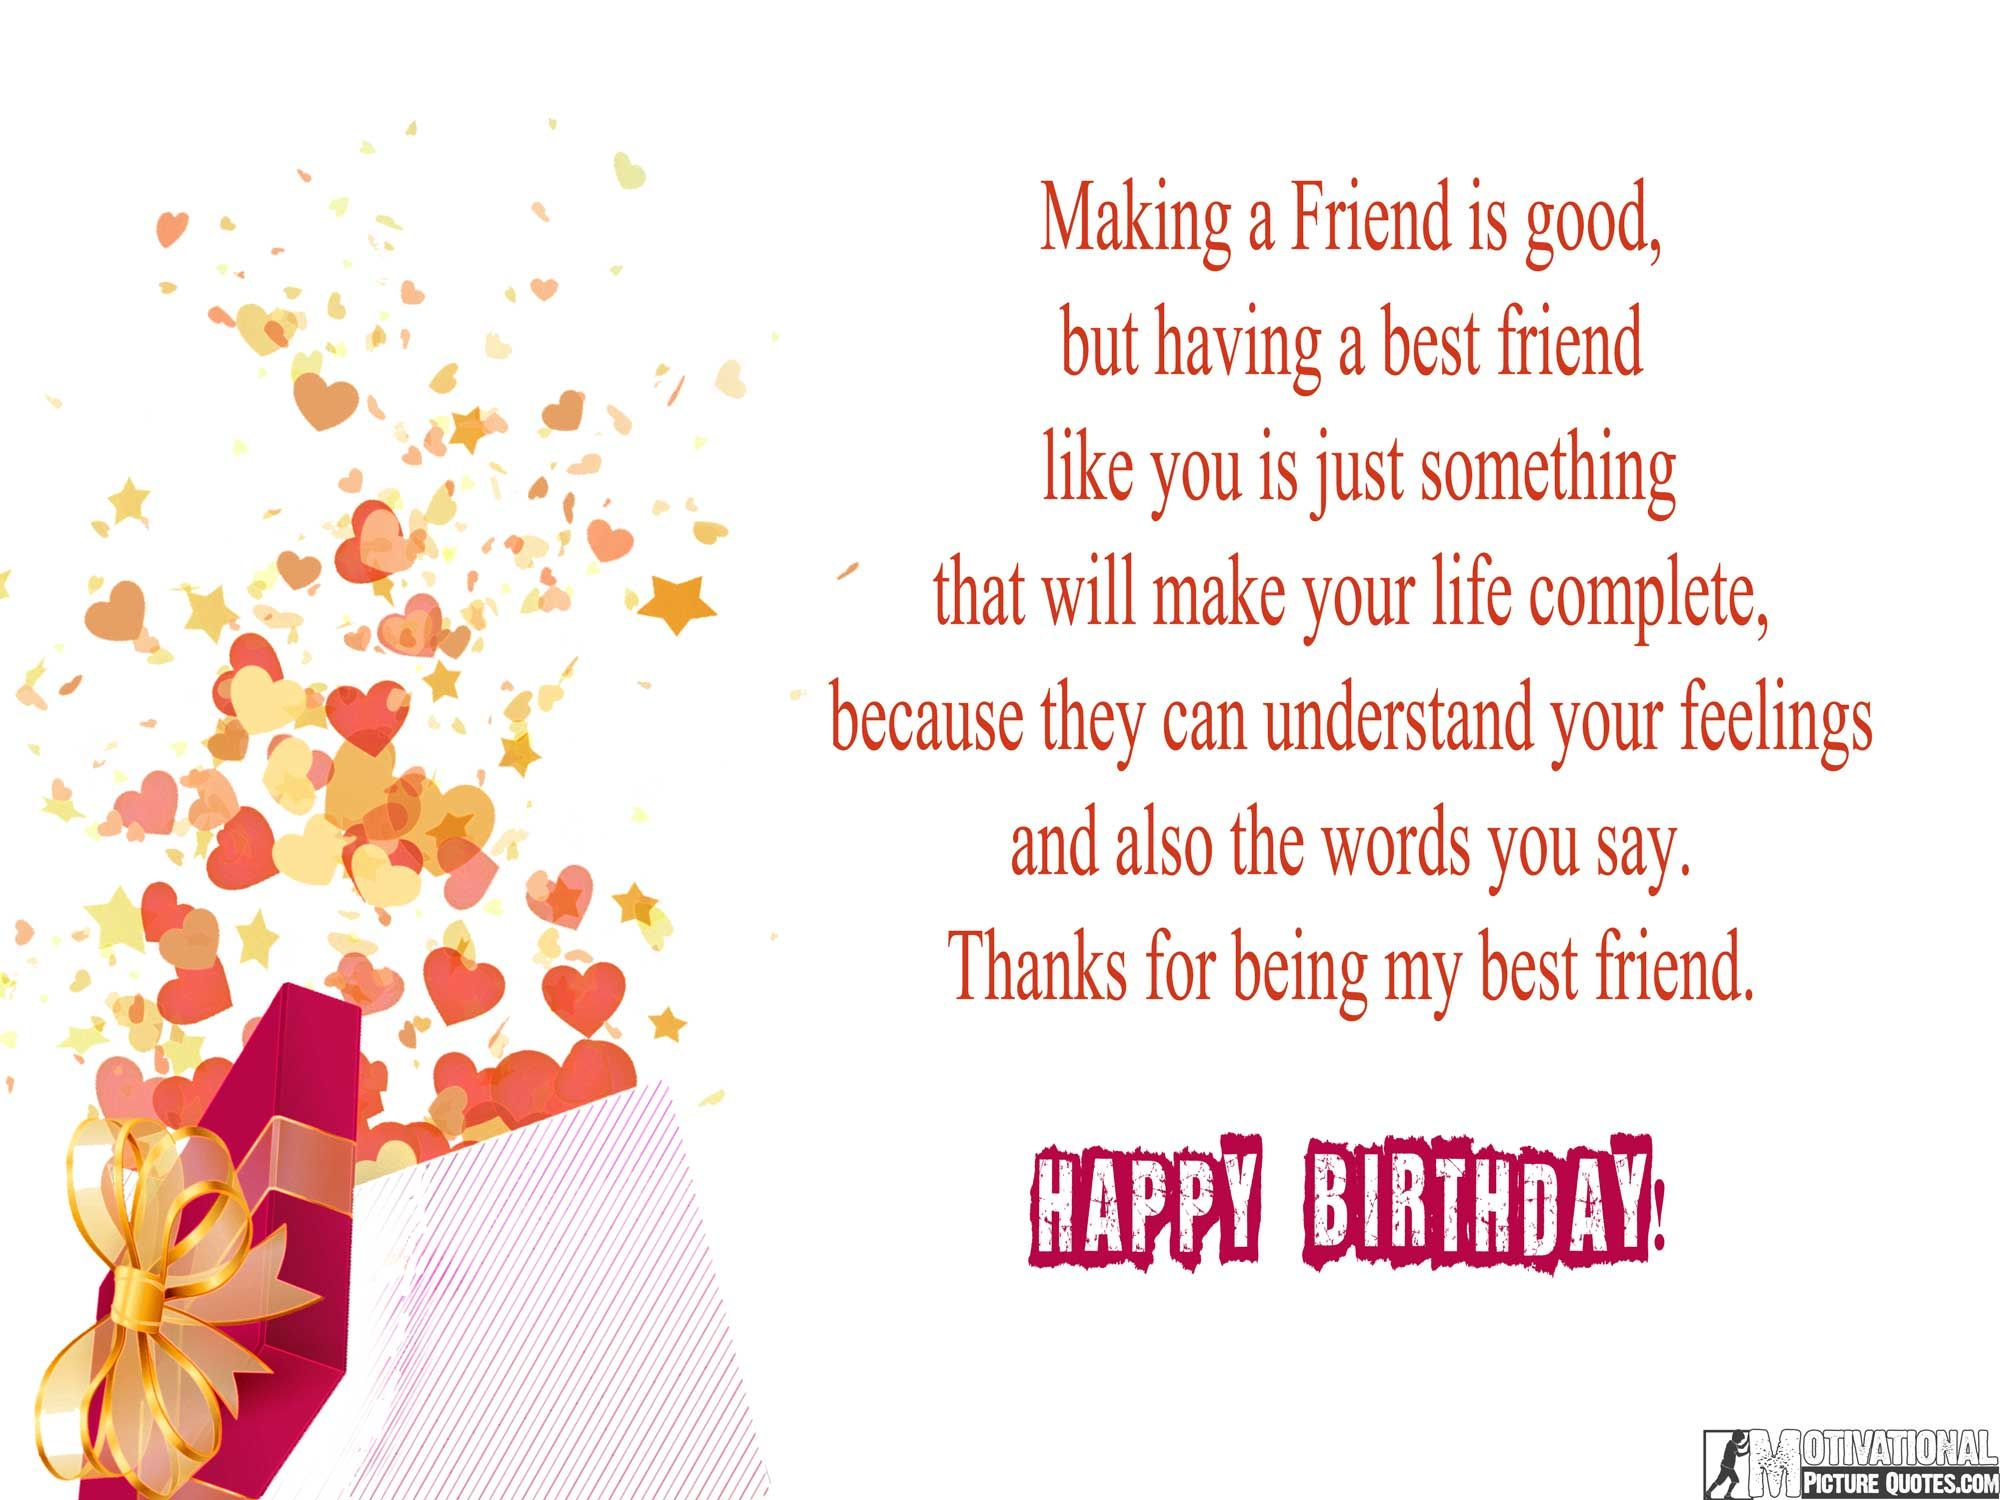 Birthday message for friend birthday wishes quotes images birthday message for friend kristyandbryce Choice Image